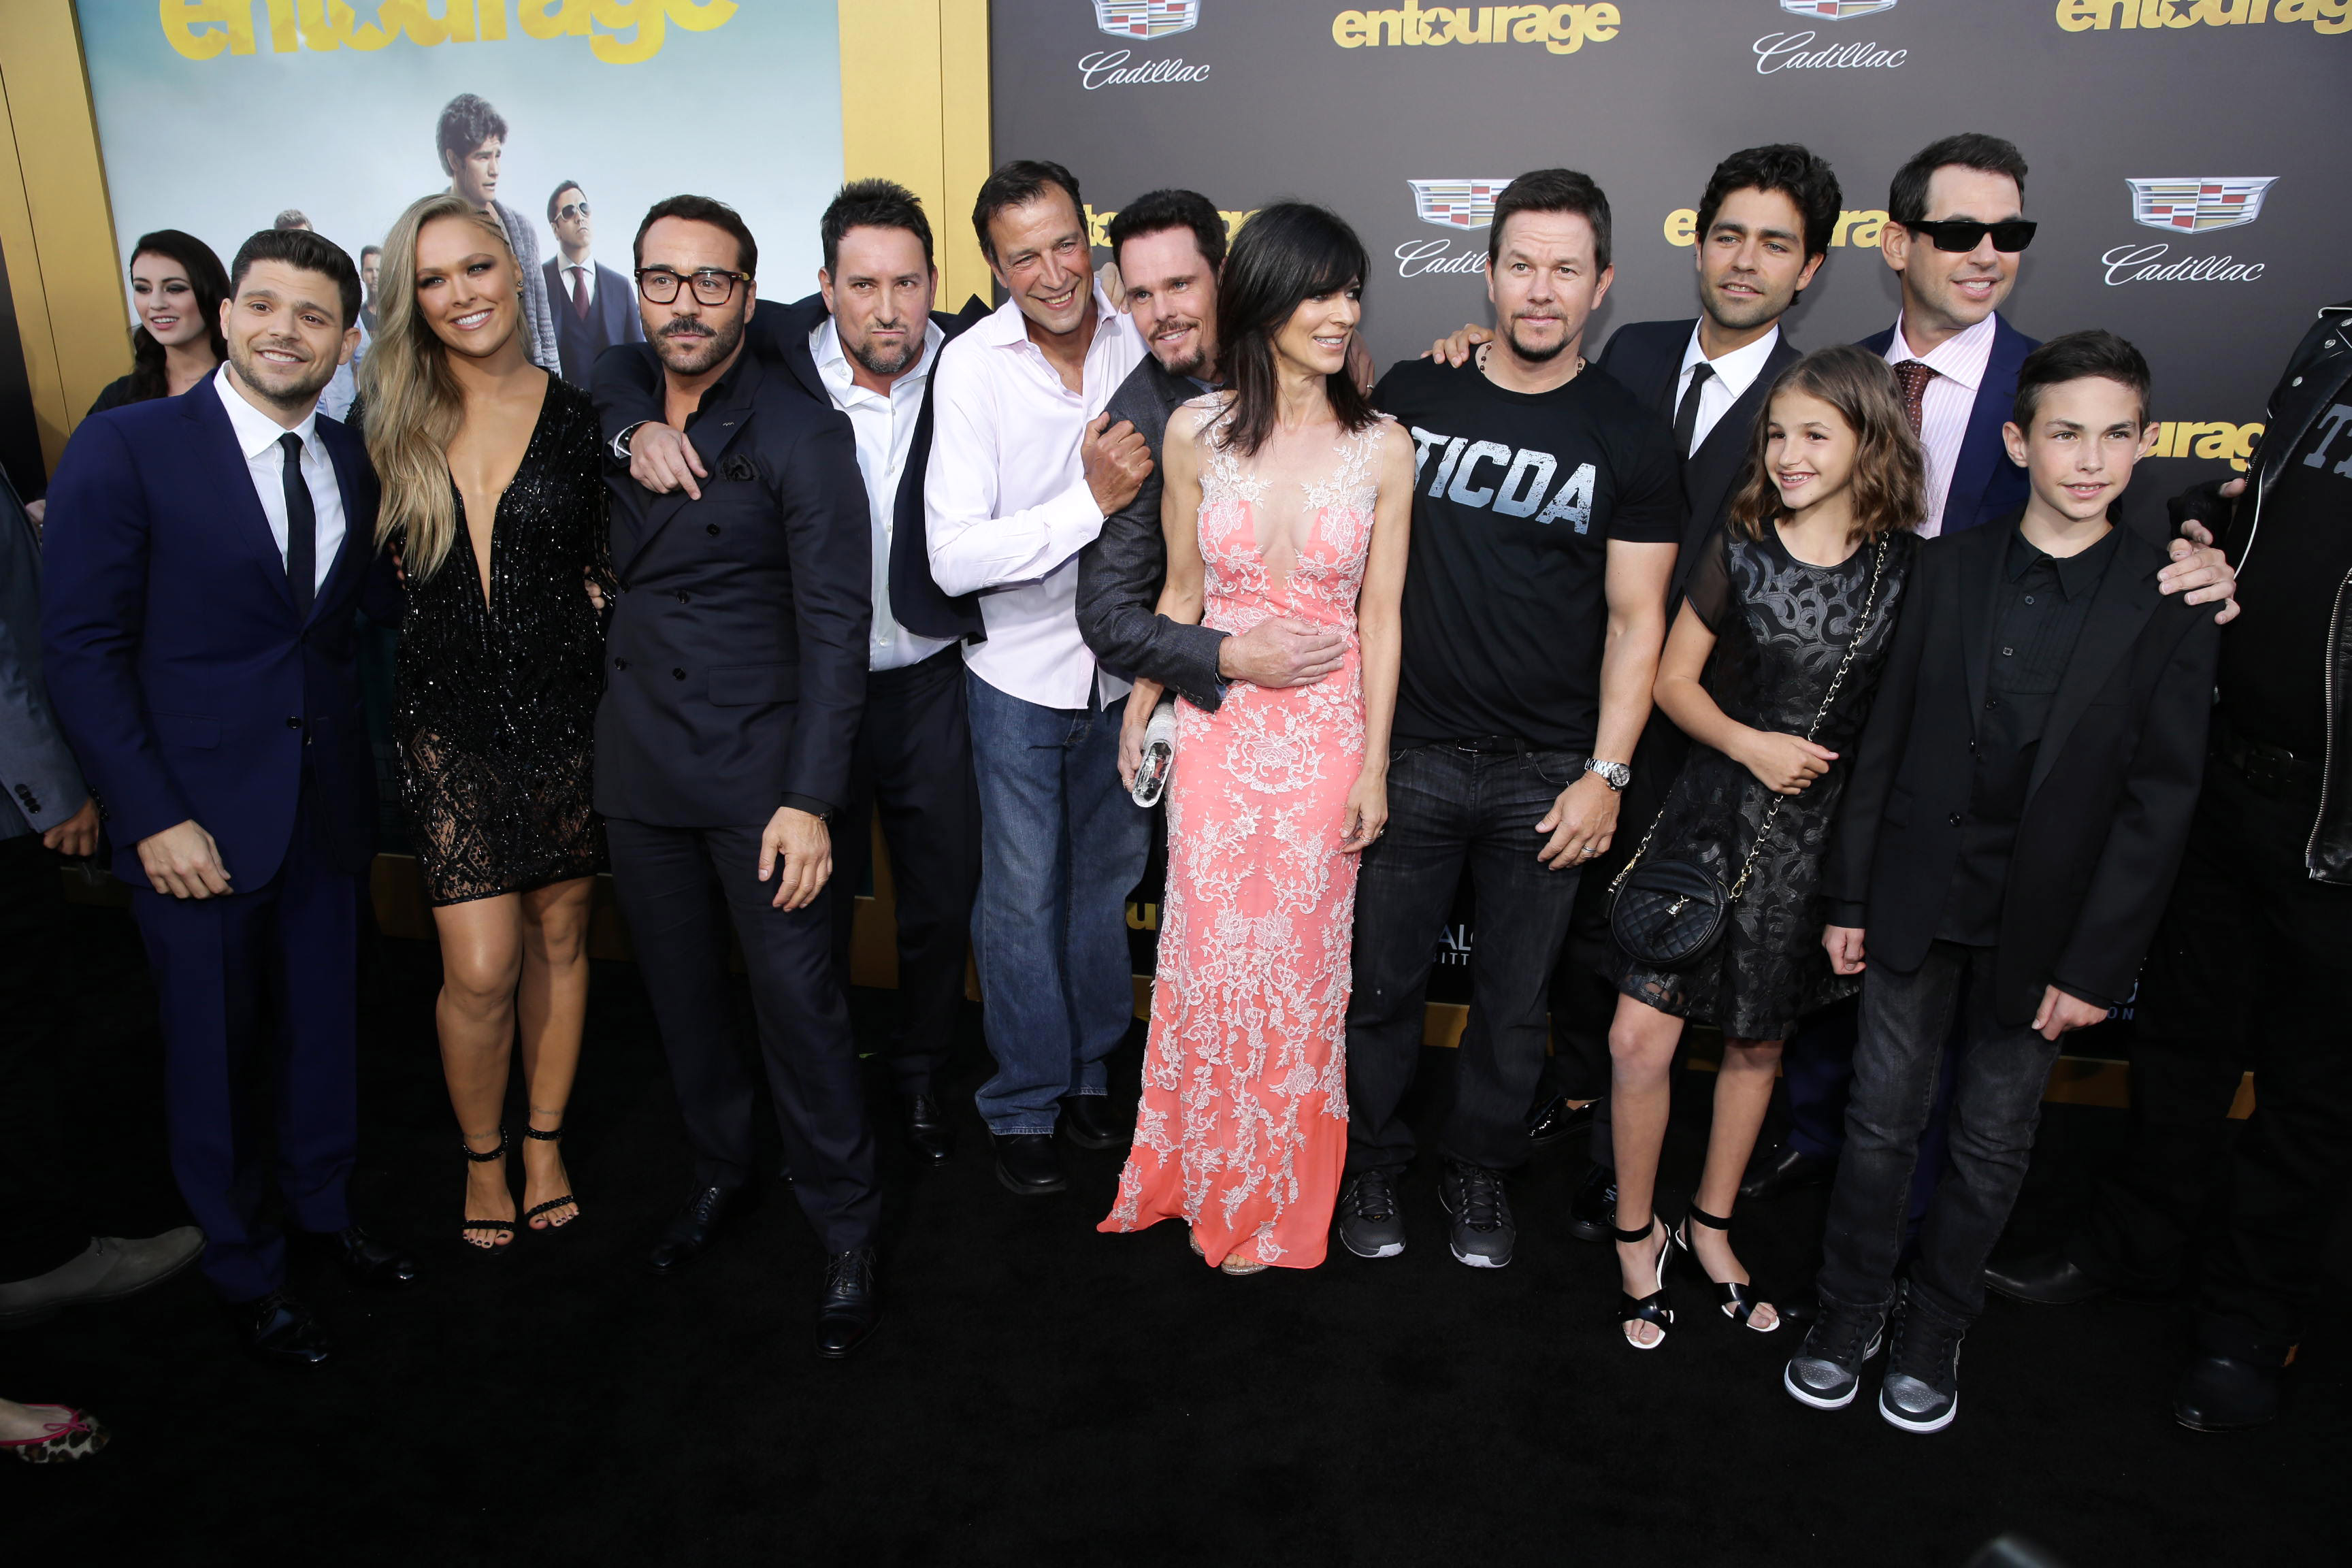 entourage cast and crew